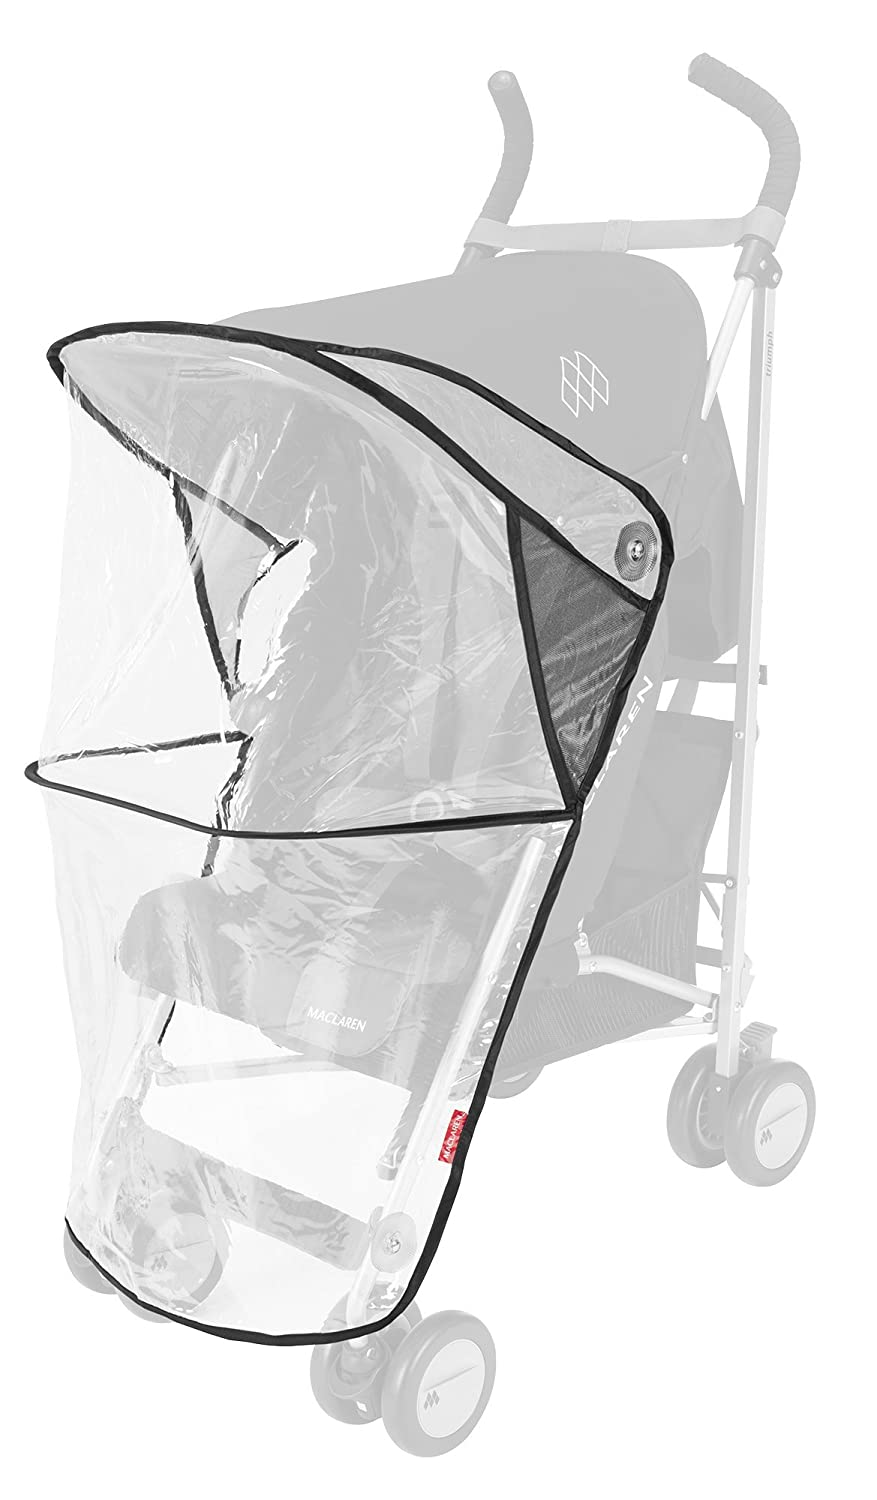 Maclaren Triumph Buggy Universal Raincover To Fit Perfect